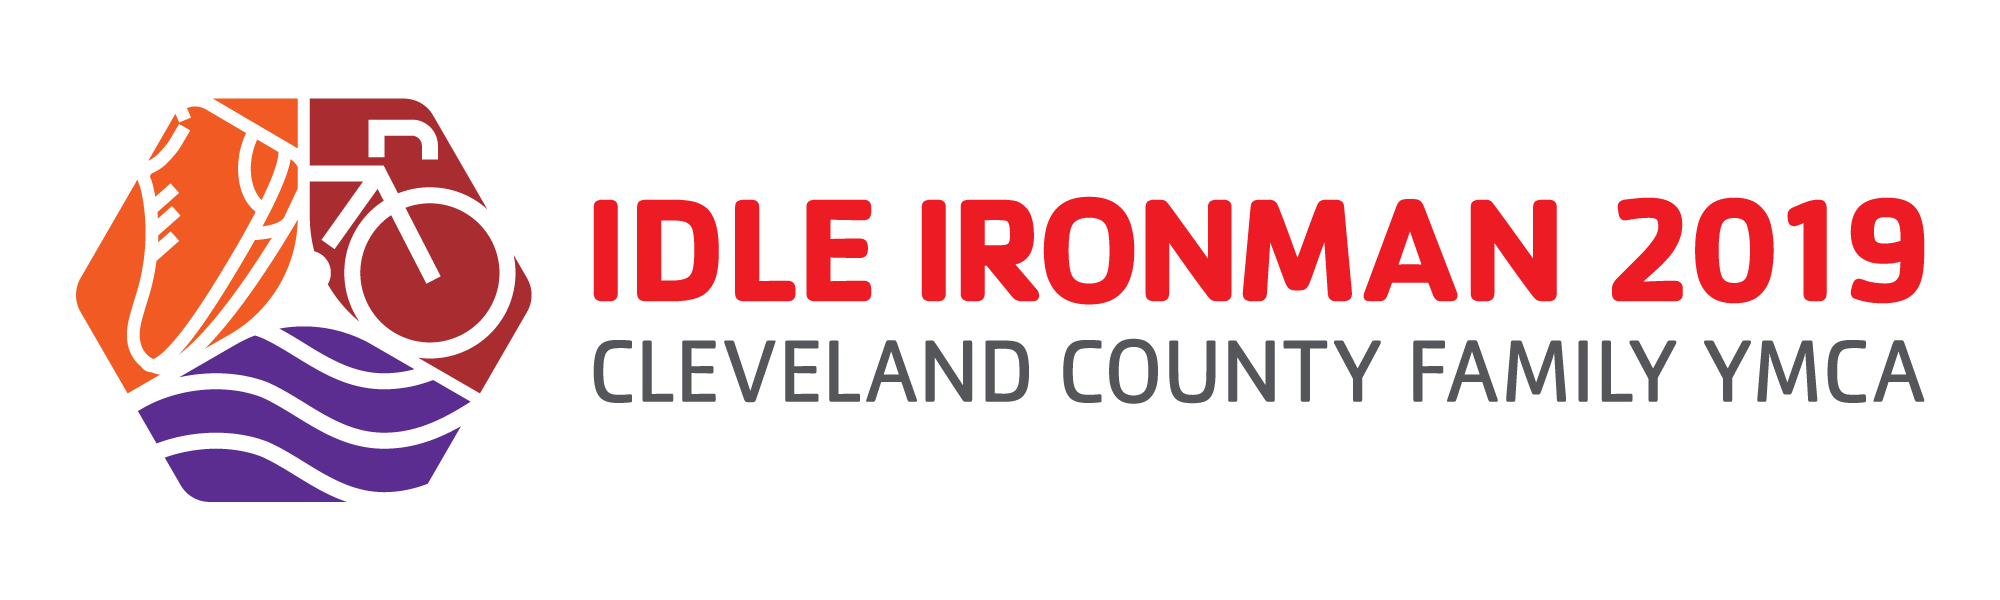 Idle-Ironman_Logo-Website.png